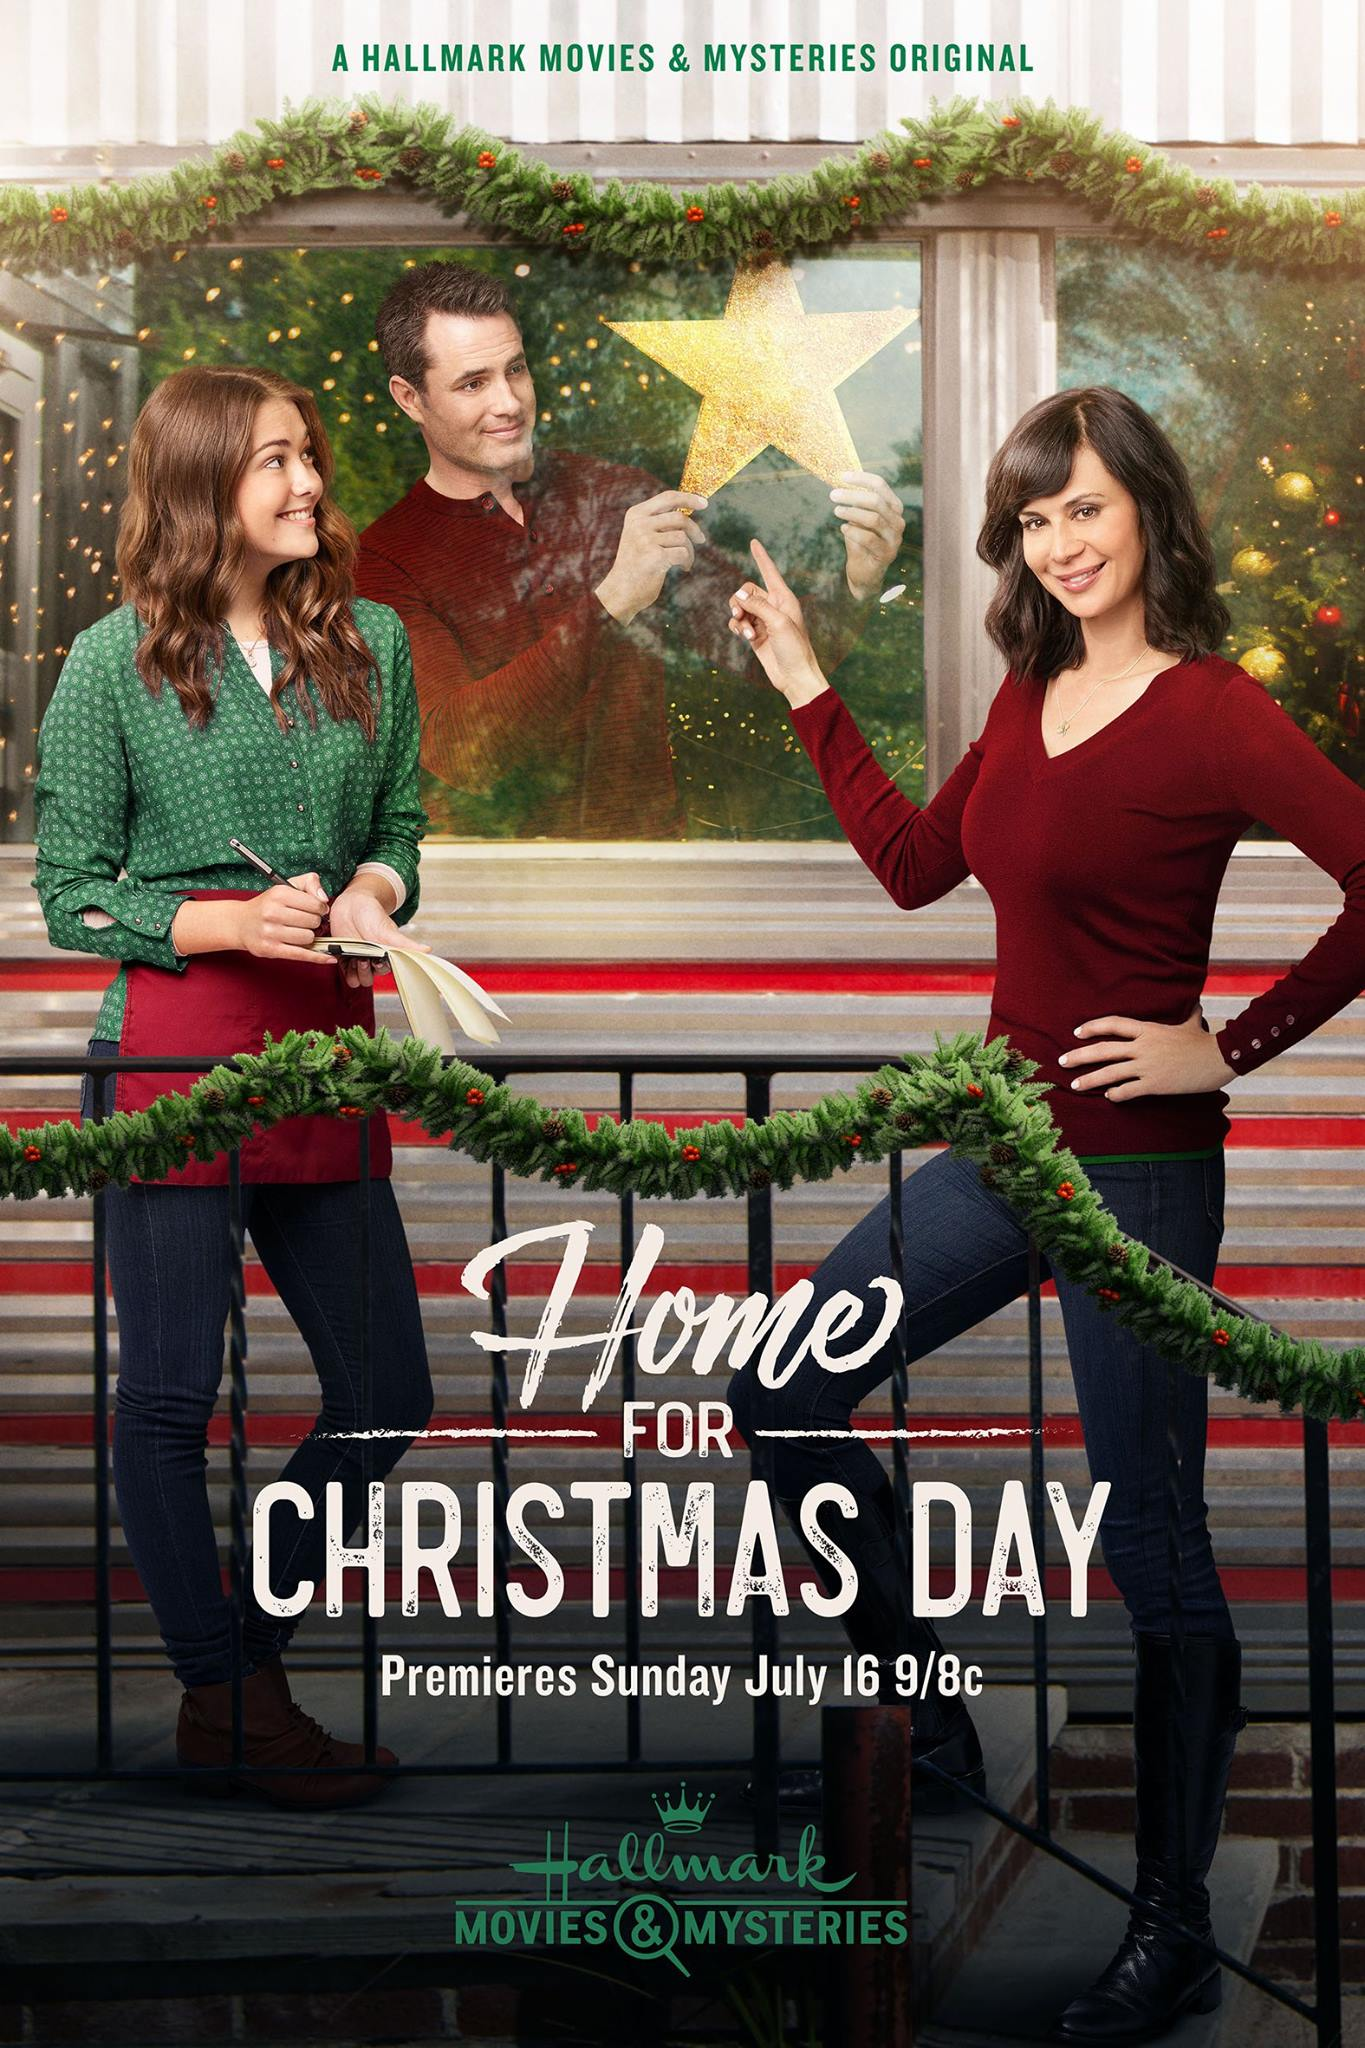 Home for christmas day 2017 2017 christmas movies on for Hallmark christmas in july 2017 schedule